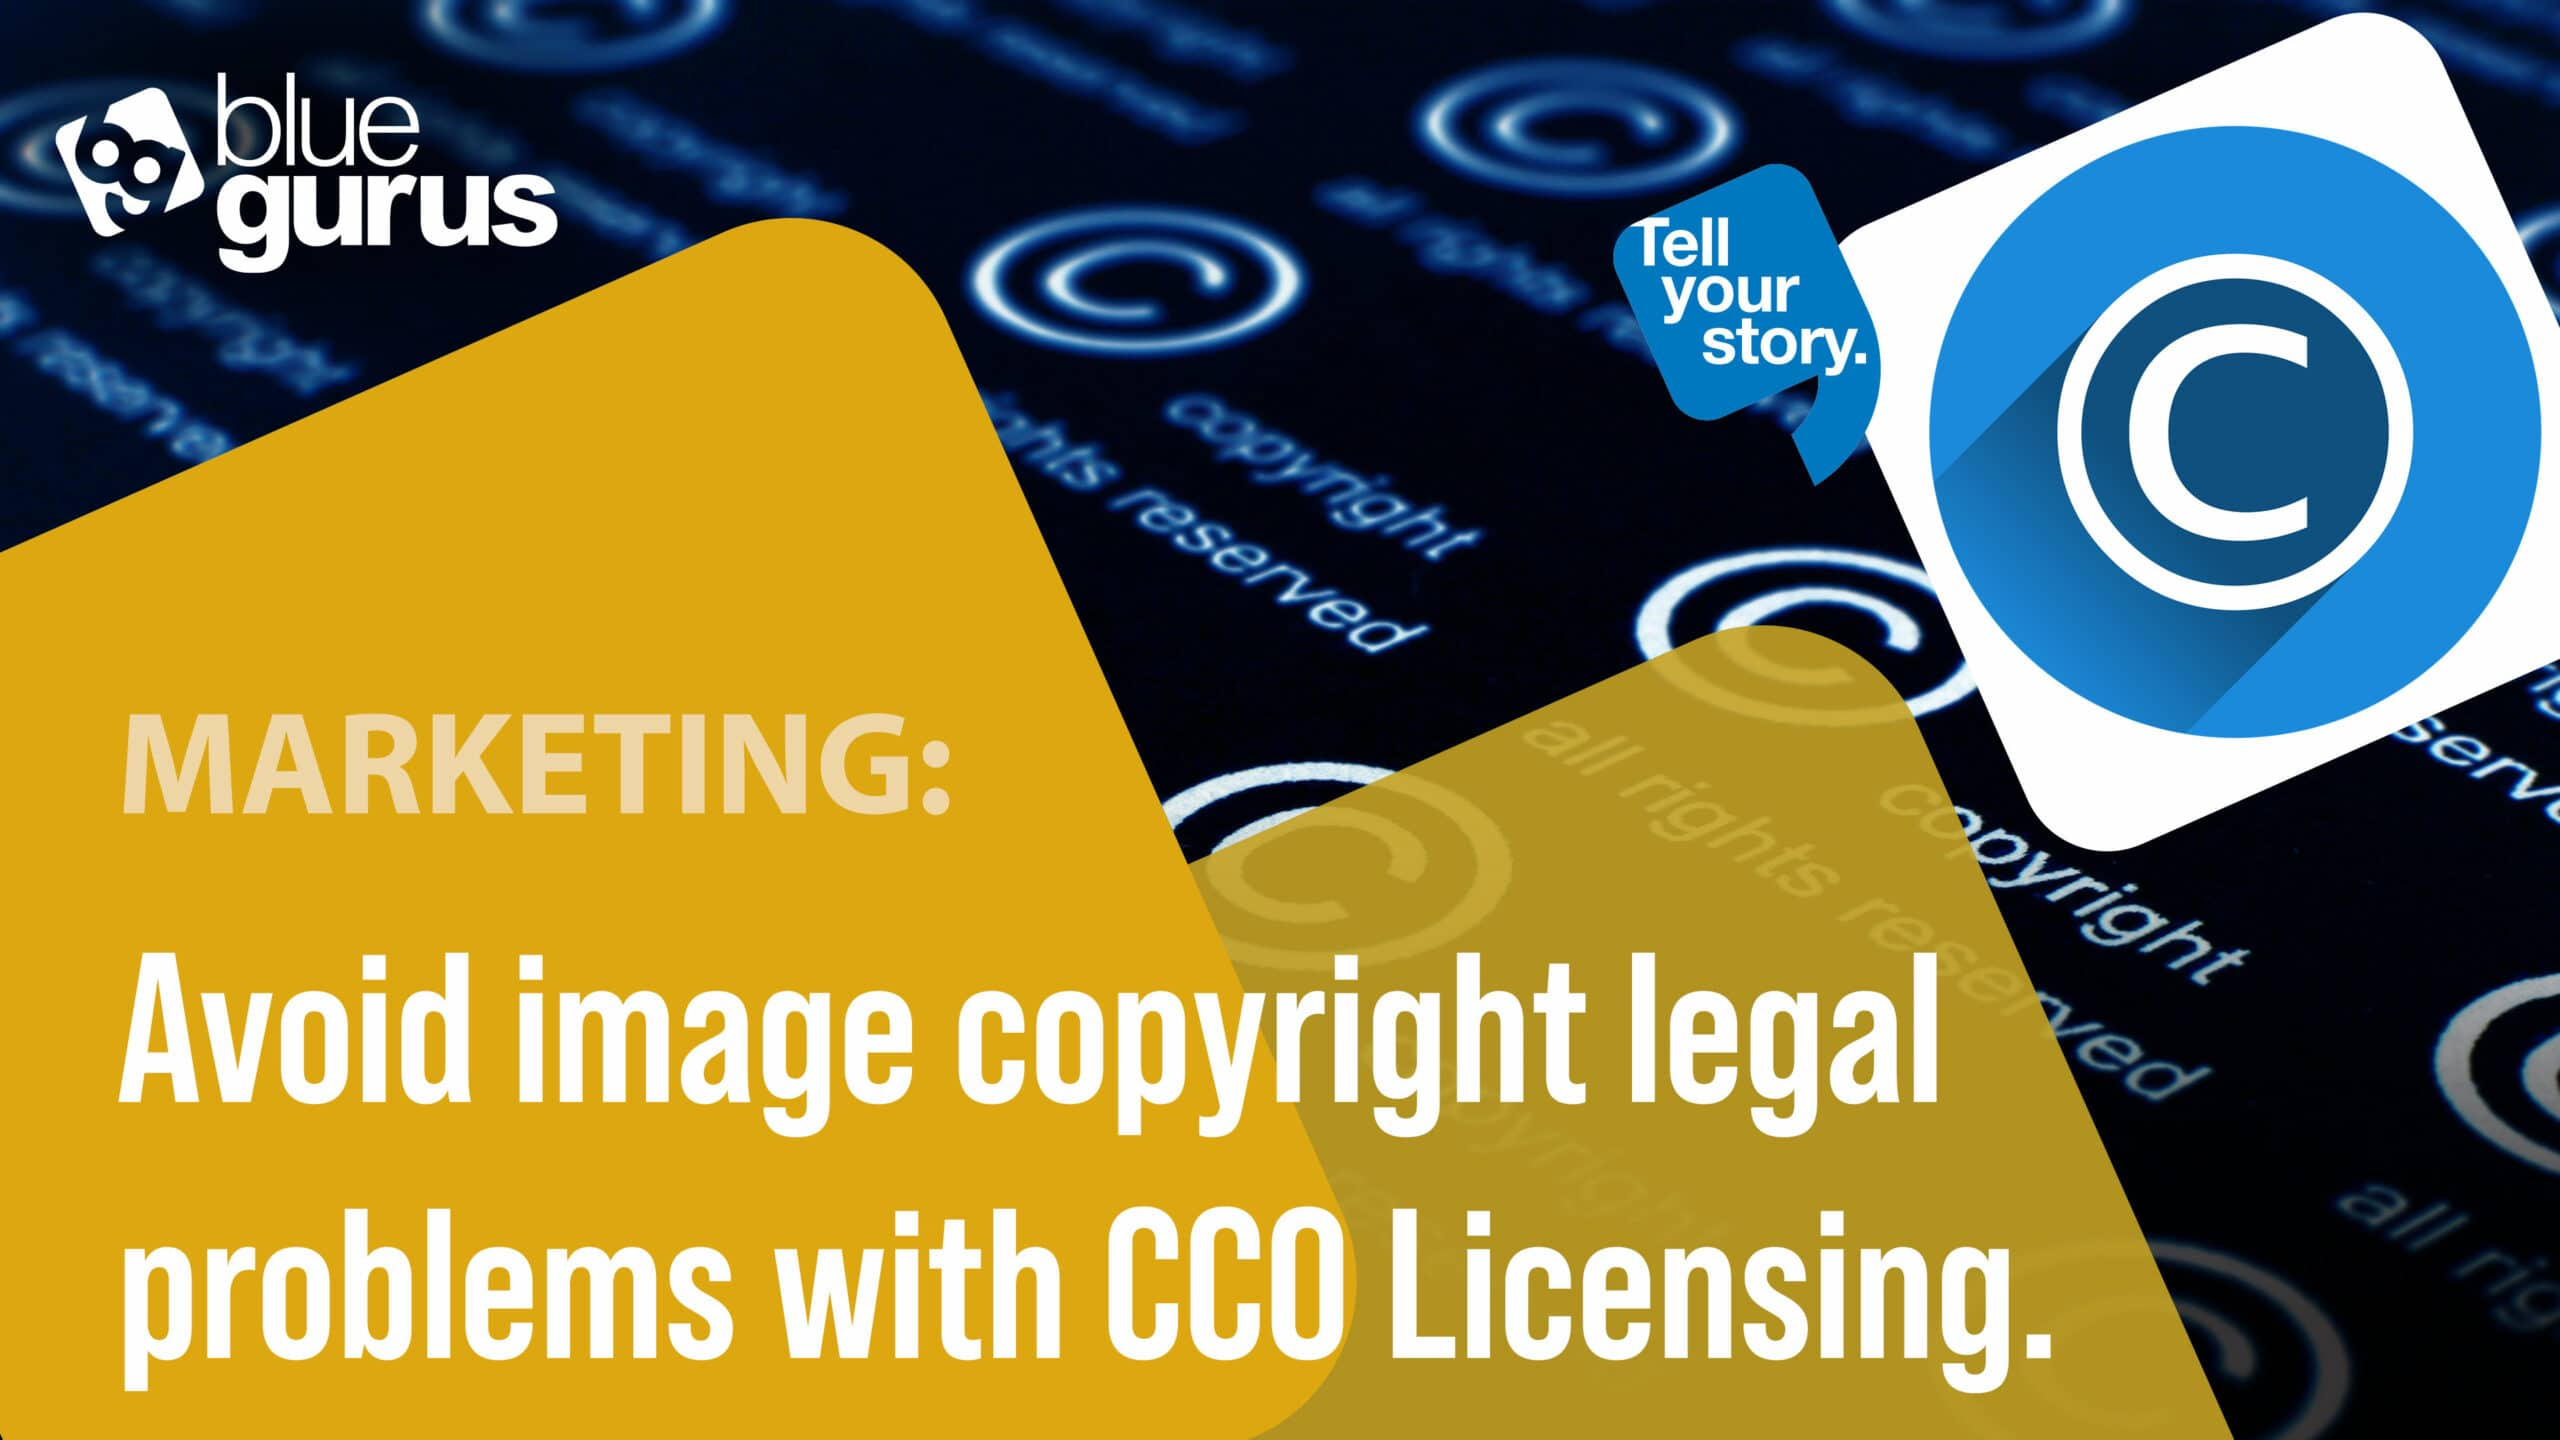 Image Copyright Matters : CC0 Licensing is the way to go